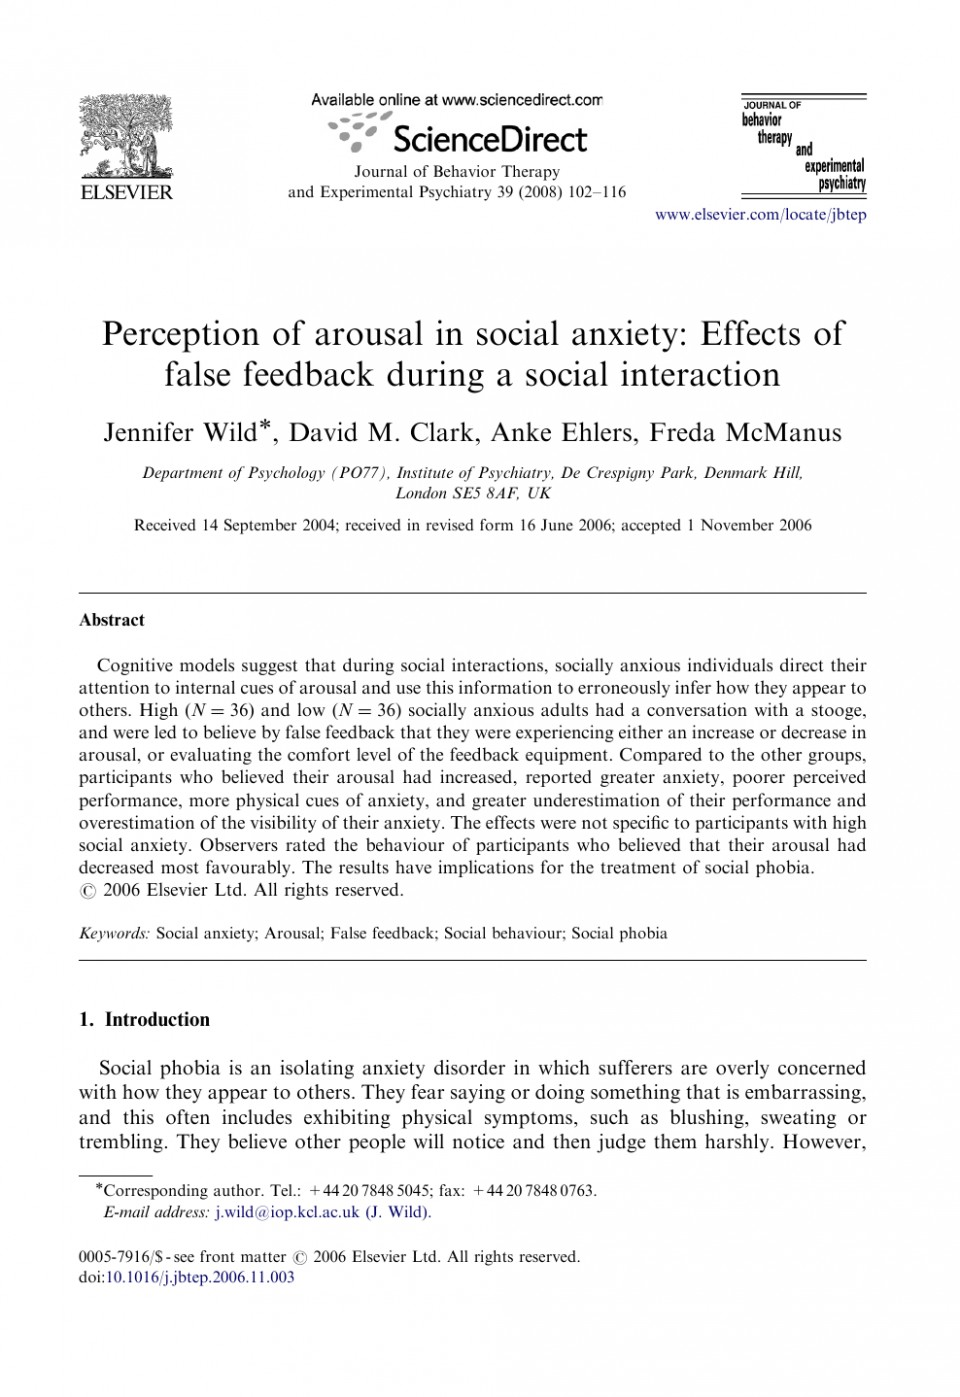 008 Psychology Research Paper On Social Anxiety Disorder Staggering 960